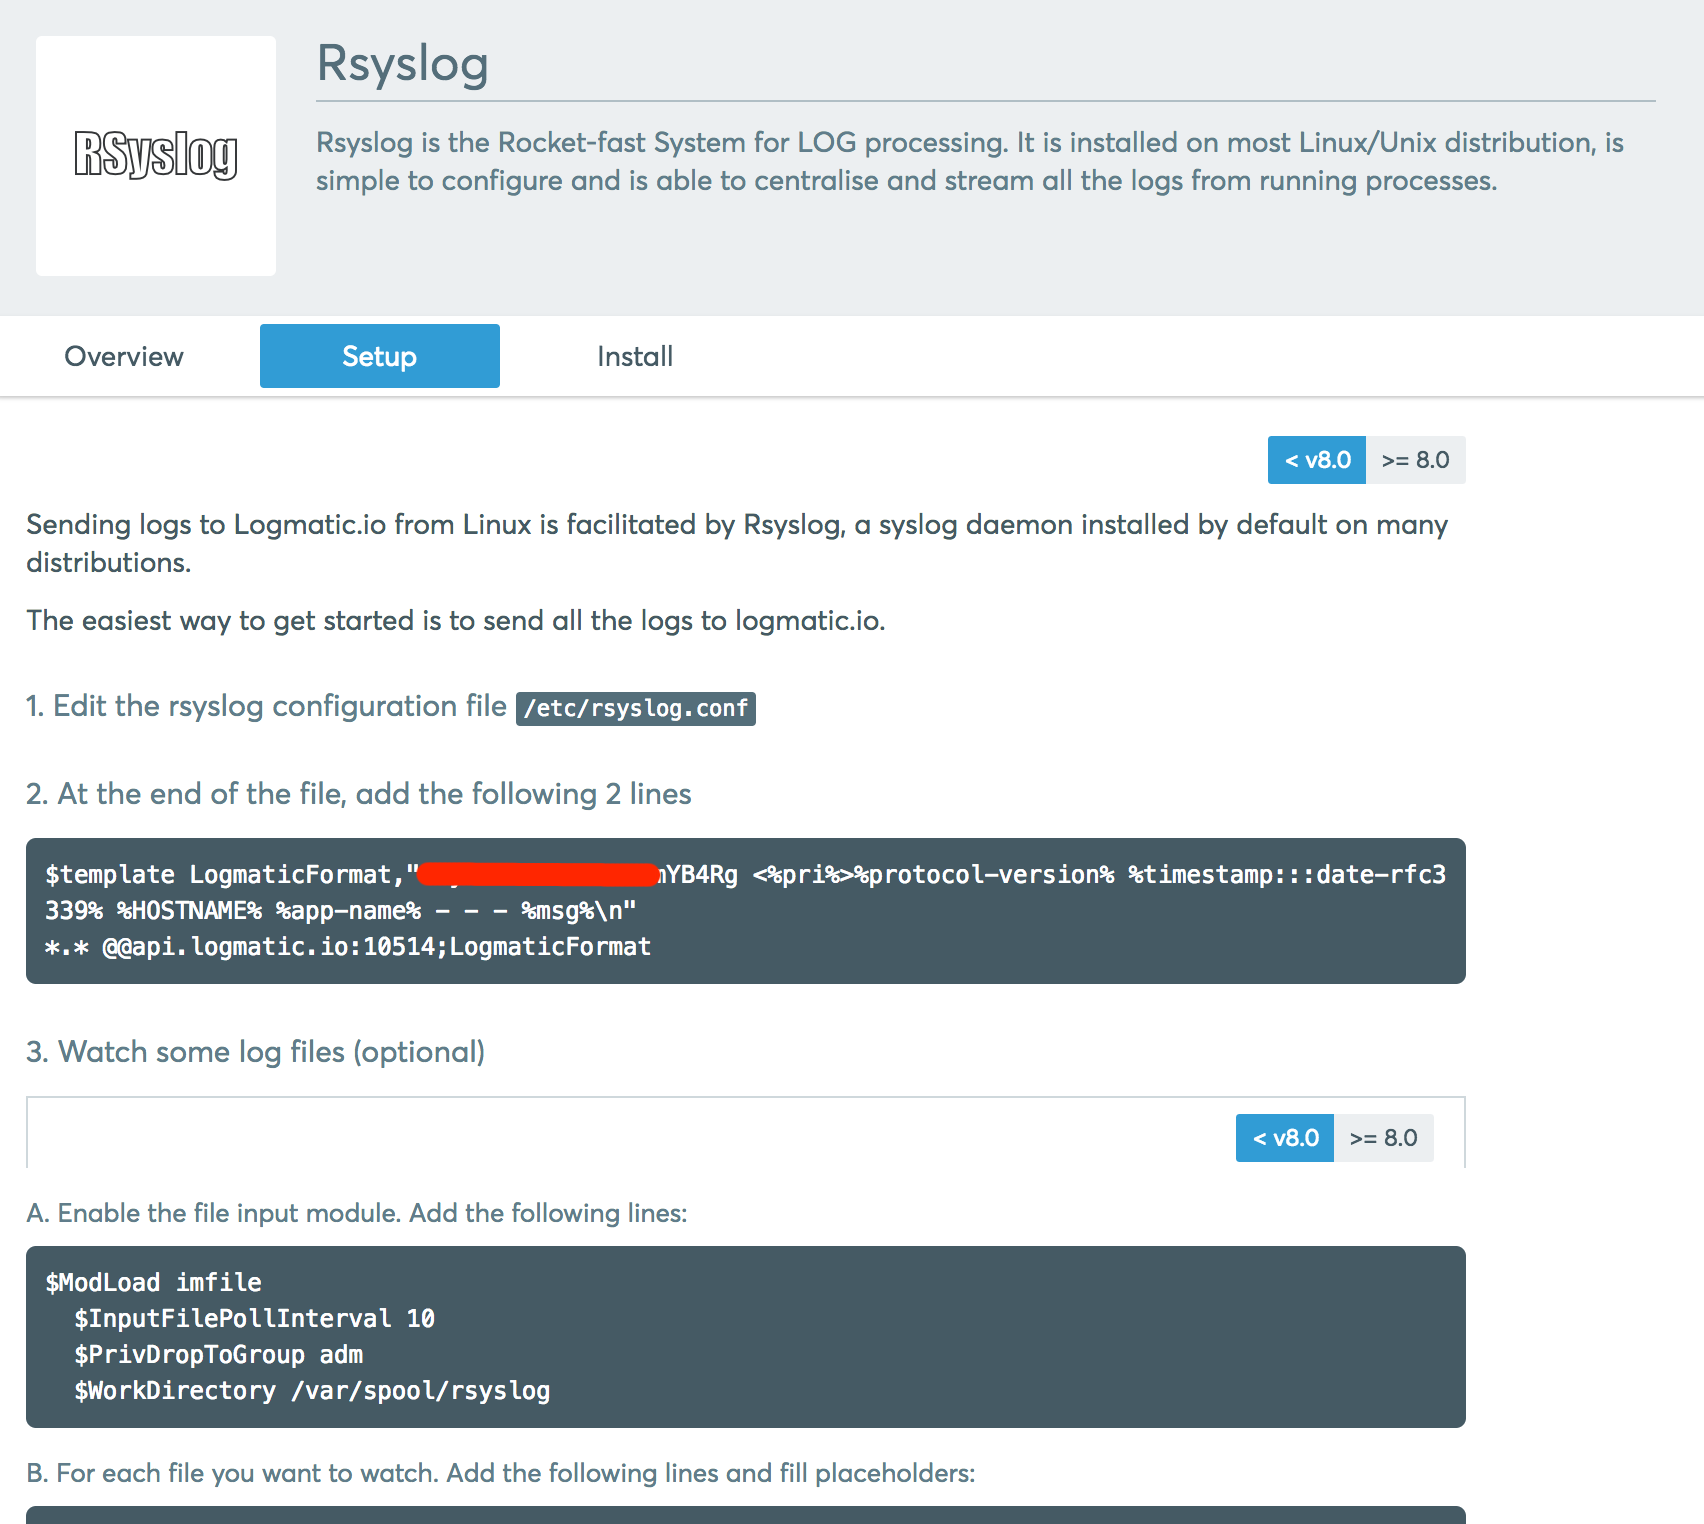 The Rsyslog setup page